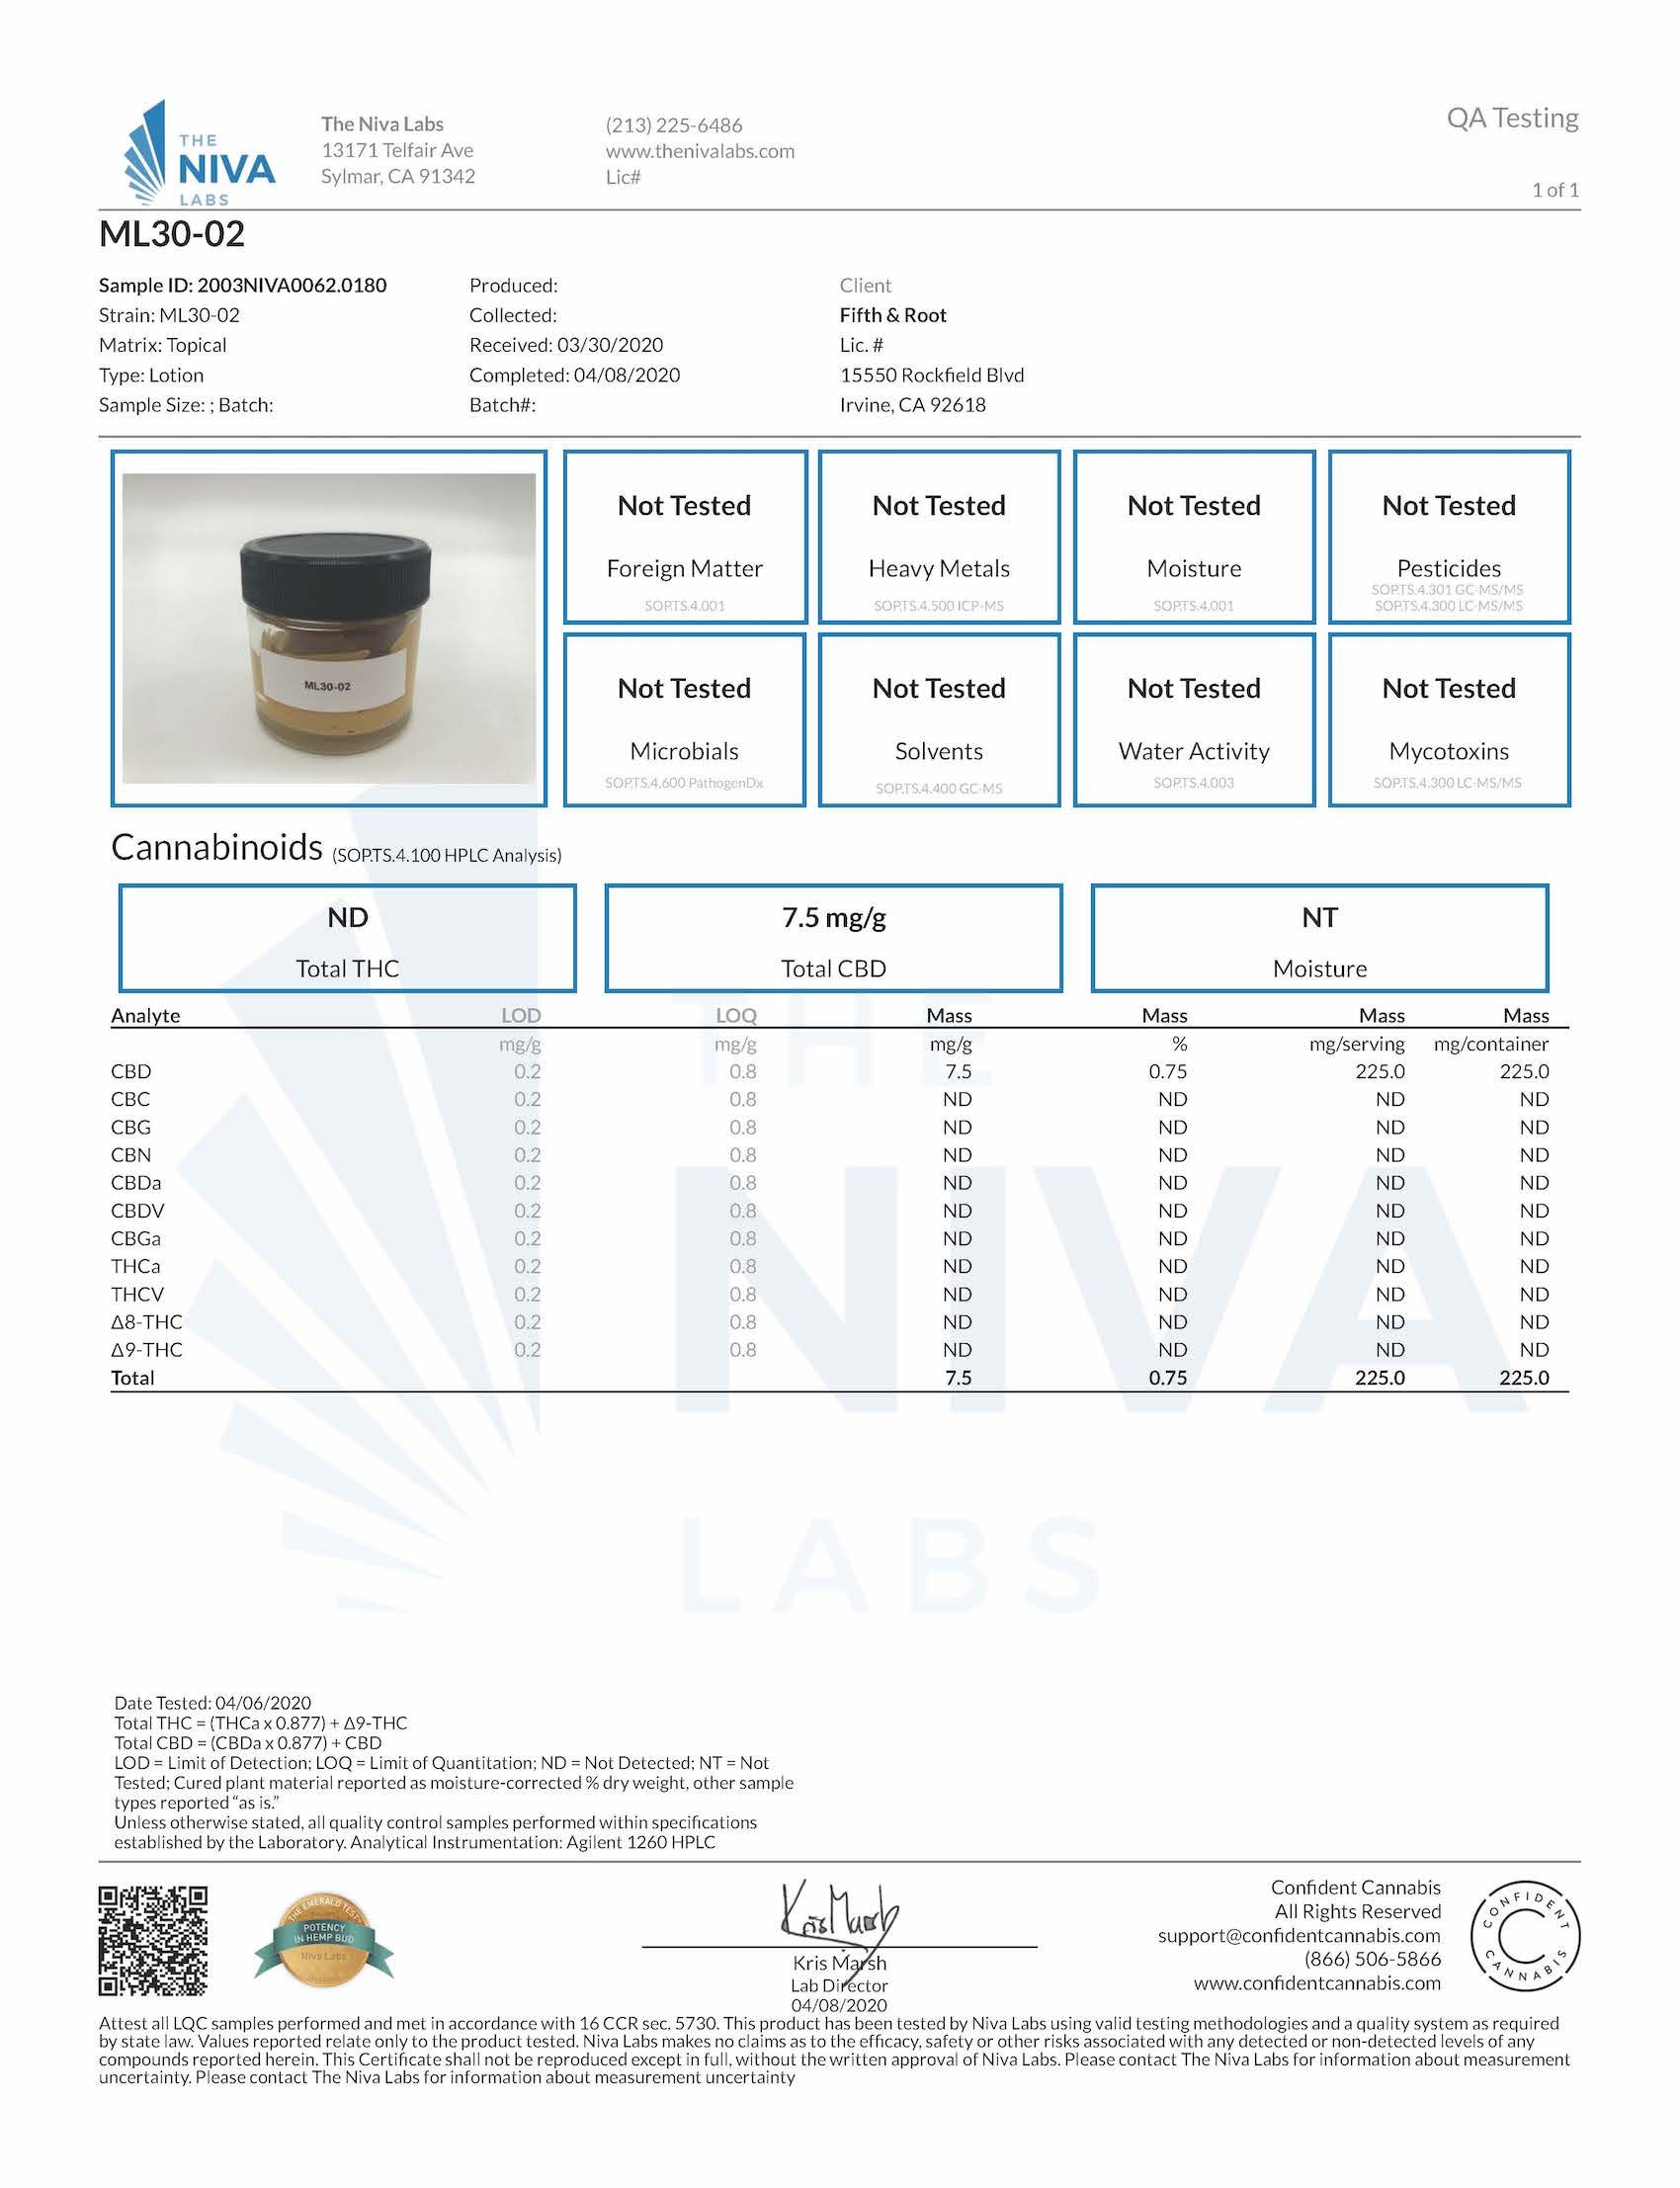 Moonlight Cooling Glow Mask Certificate of Analysis